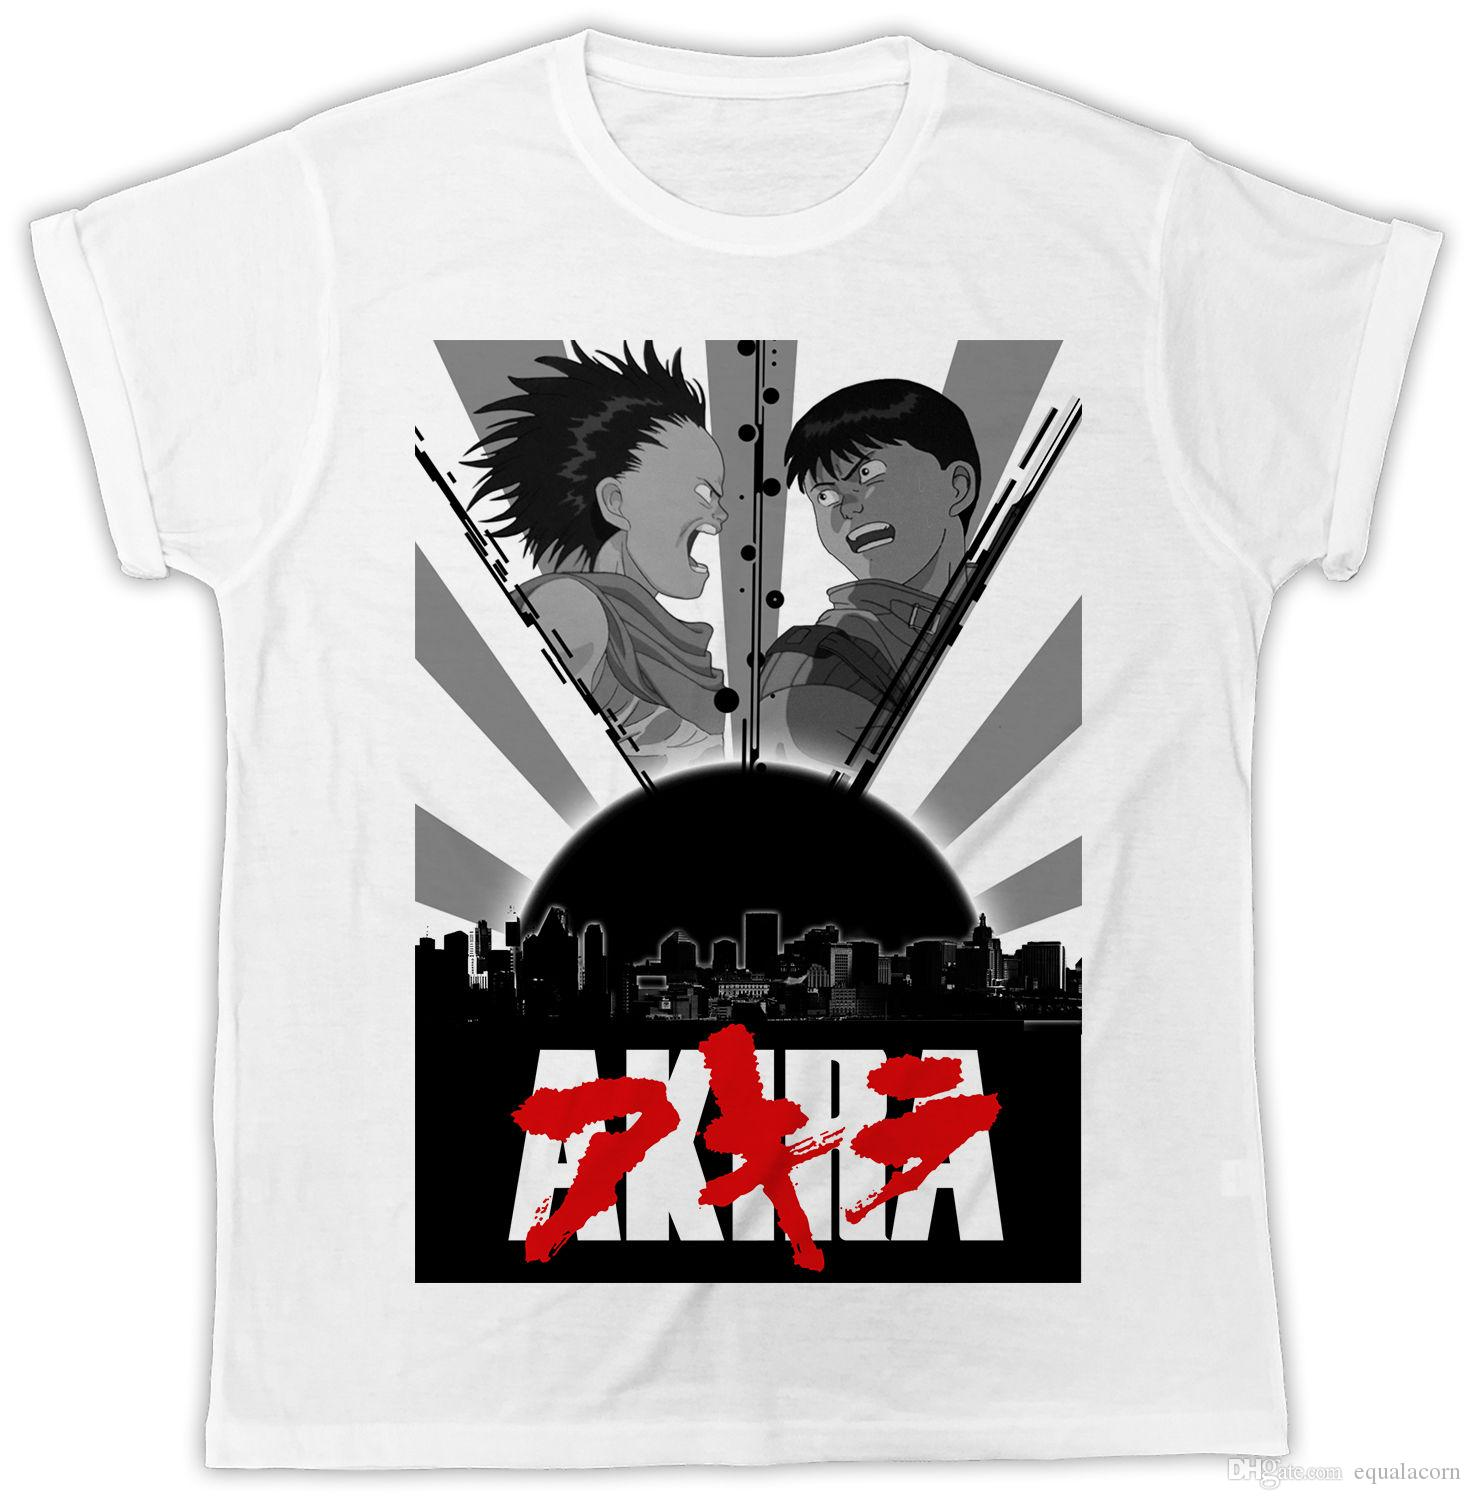 AKIRA MOVIE POSTER IDEAL BIRTHDAY GIFT DESIGNER COOL MENS T SHIRT Fun Tee Daily Shirts From Equalacorn 103